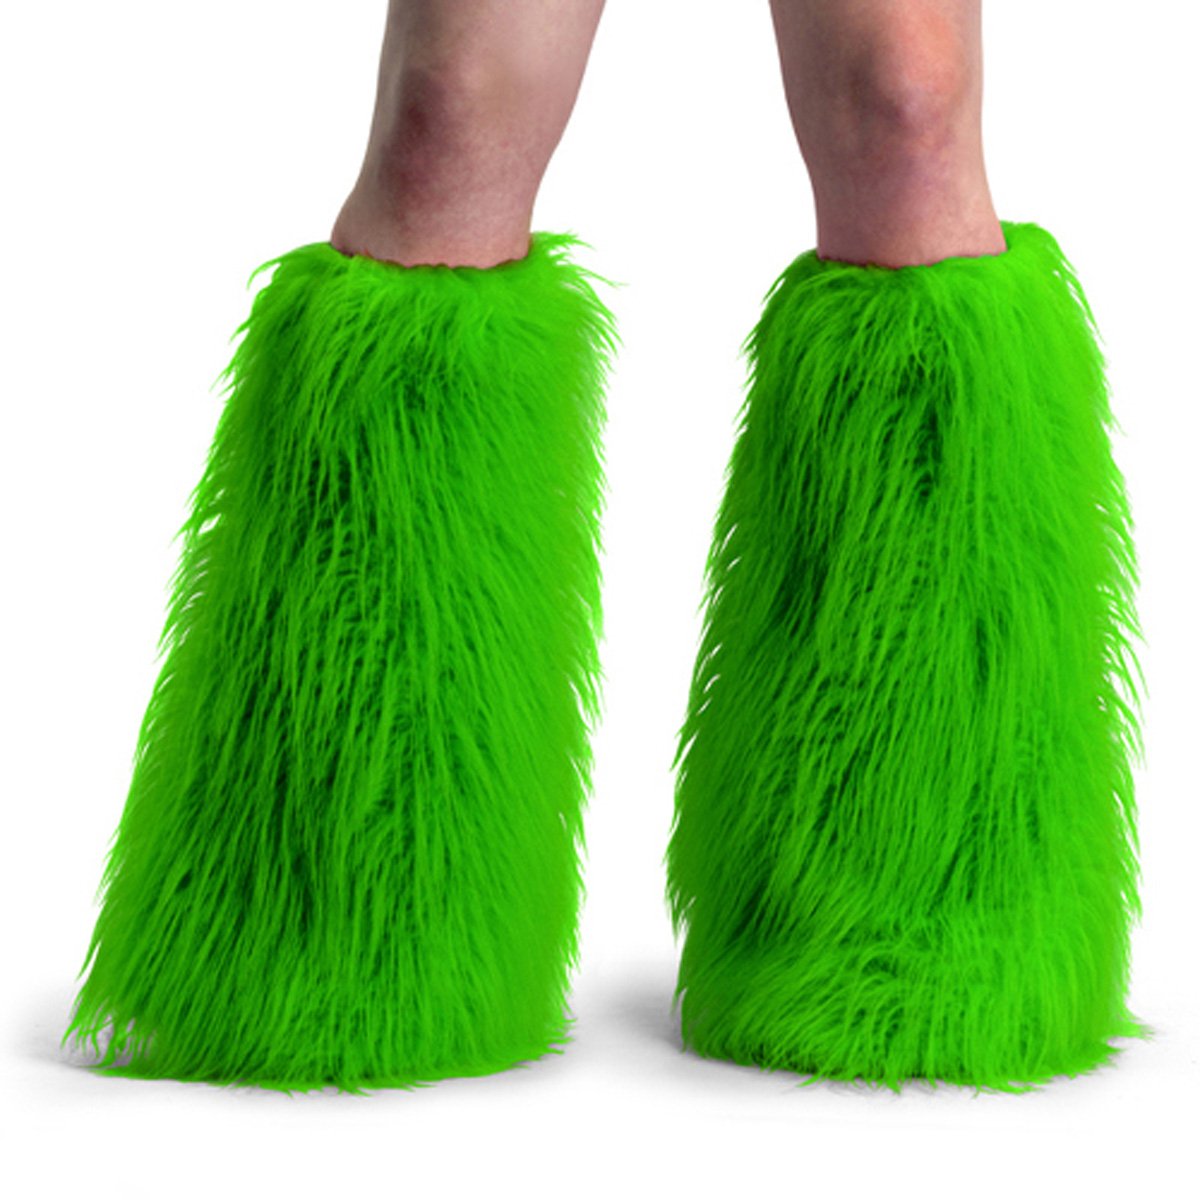 ACCESSORIES YETI-01 Neon Green Faux Fur Boot Sleeve/Neon Green Faux Fur